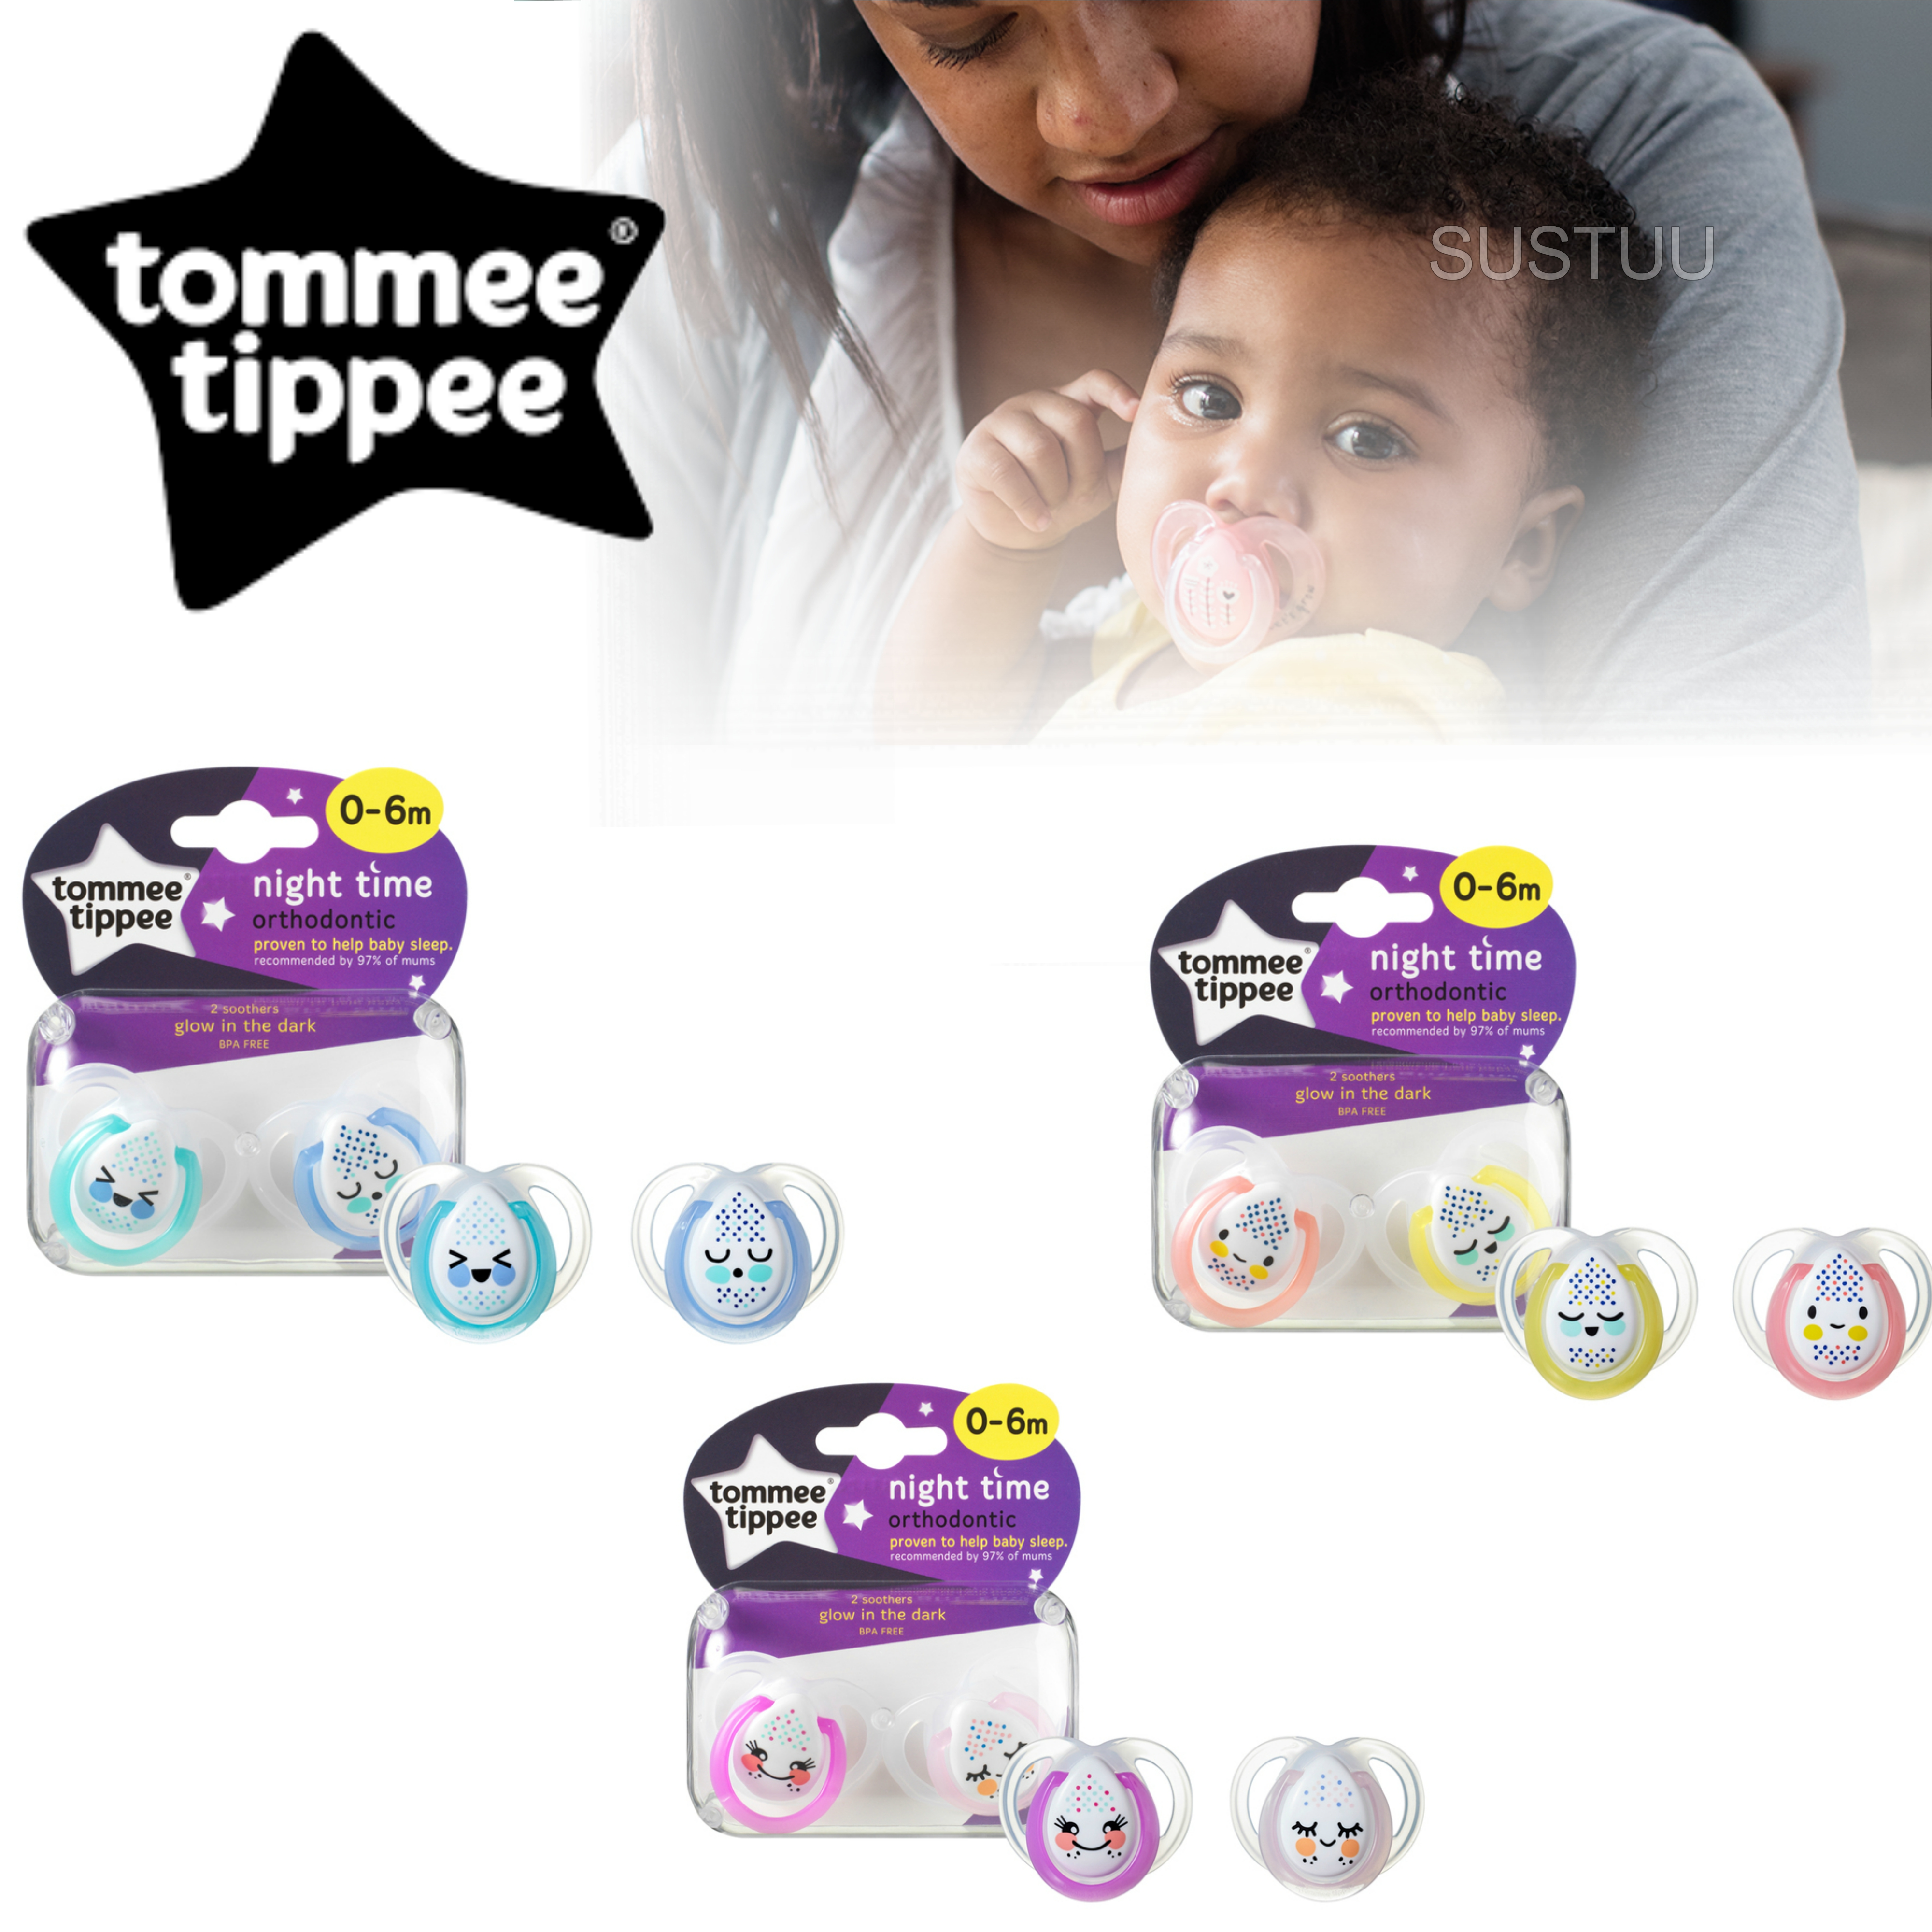 Tommee Tippee  Night Time Soother 0-6m 2Pk | Supports Natural Oral Develpment | New